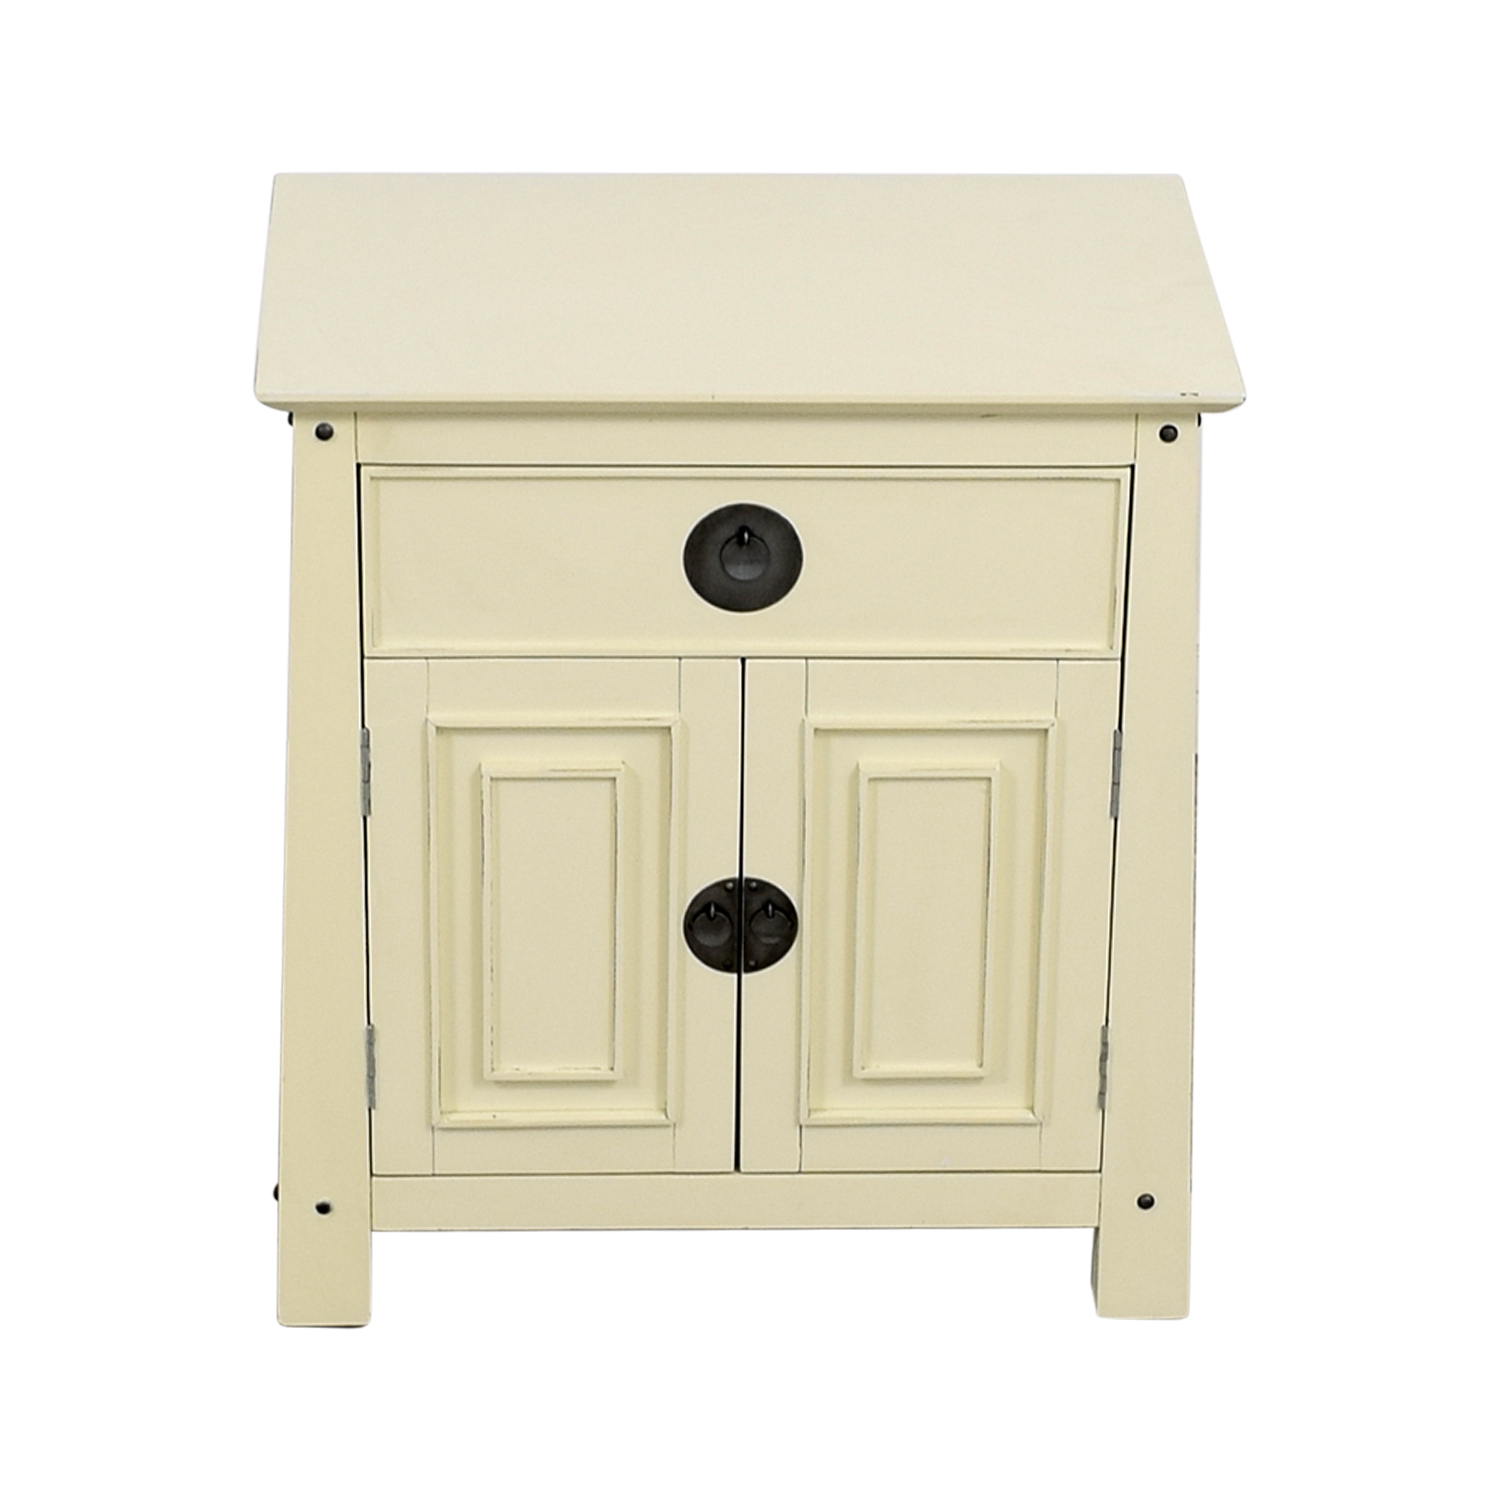 Pier 1 Pier 1 Shanghai Collection Bedside Chest on sale